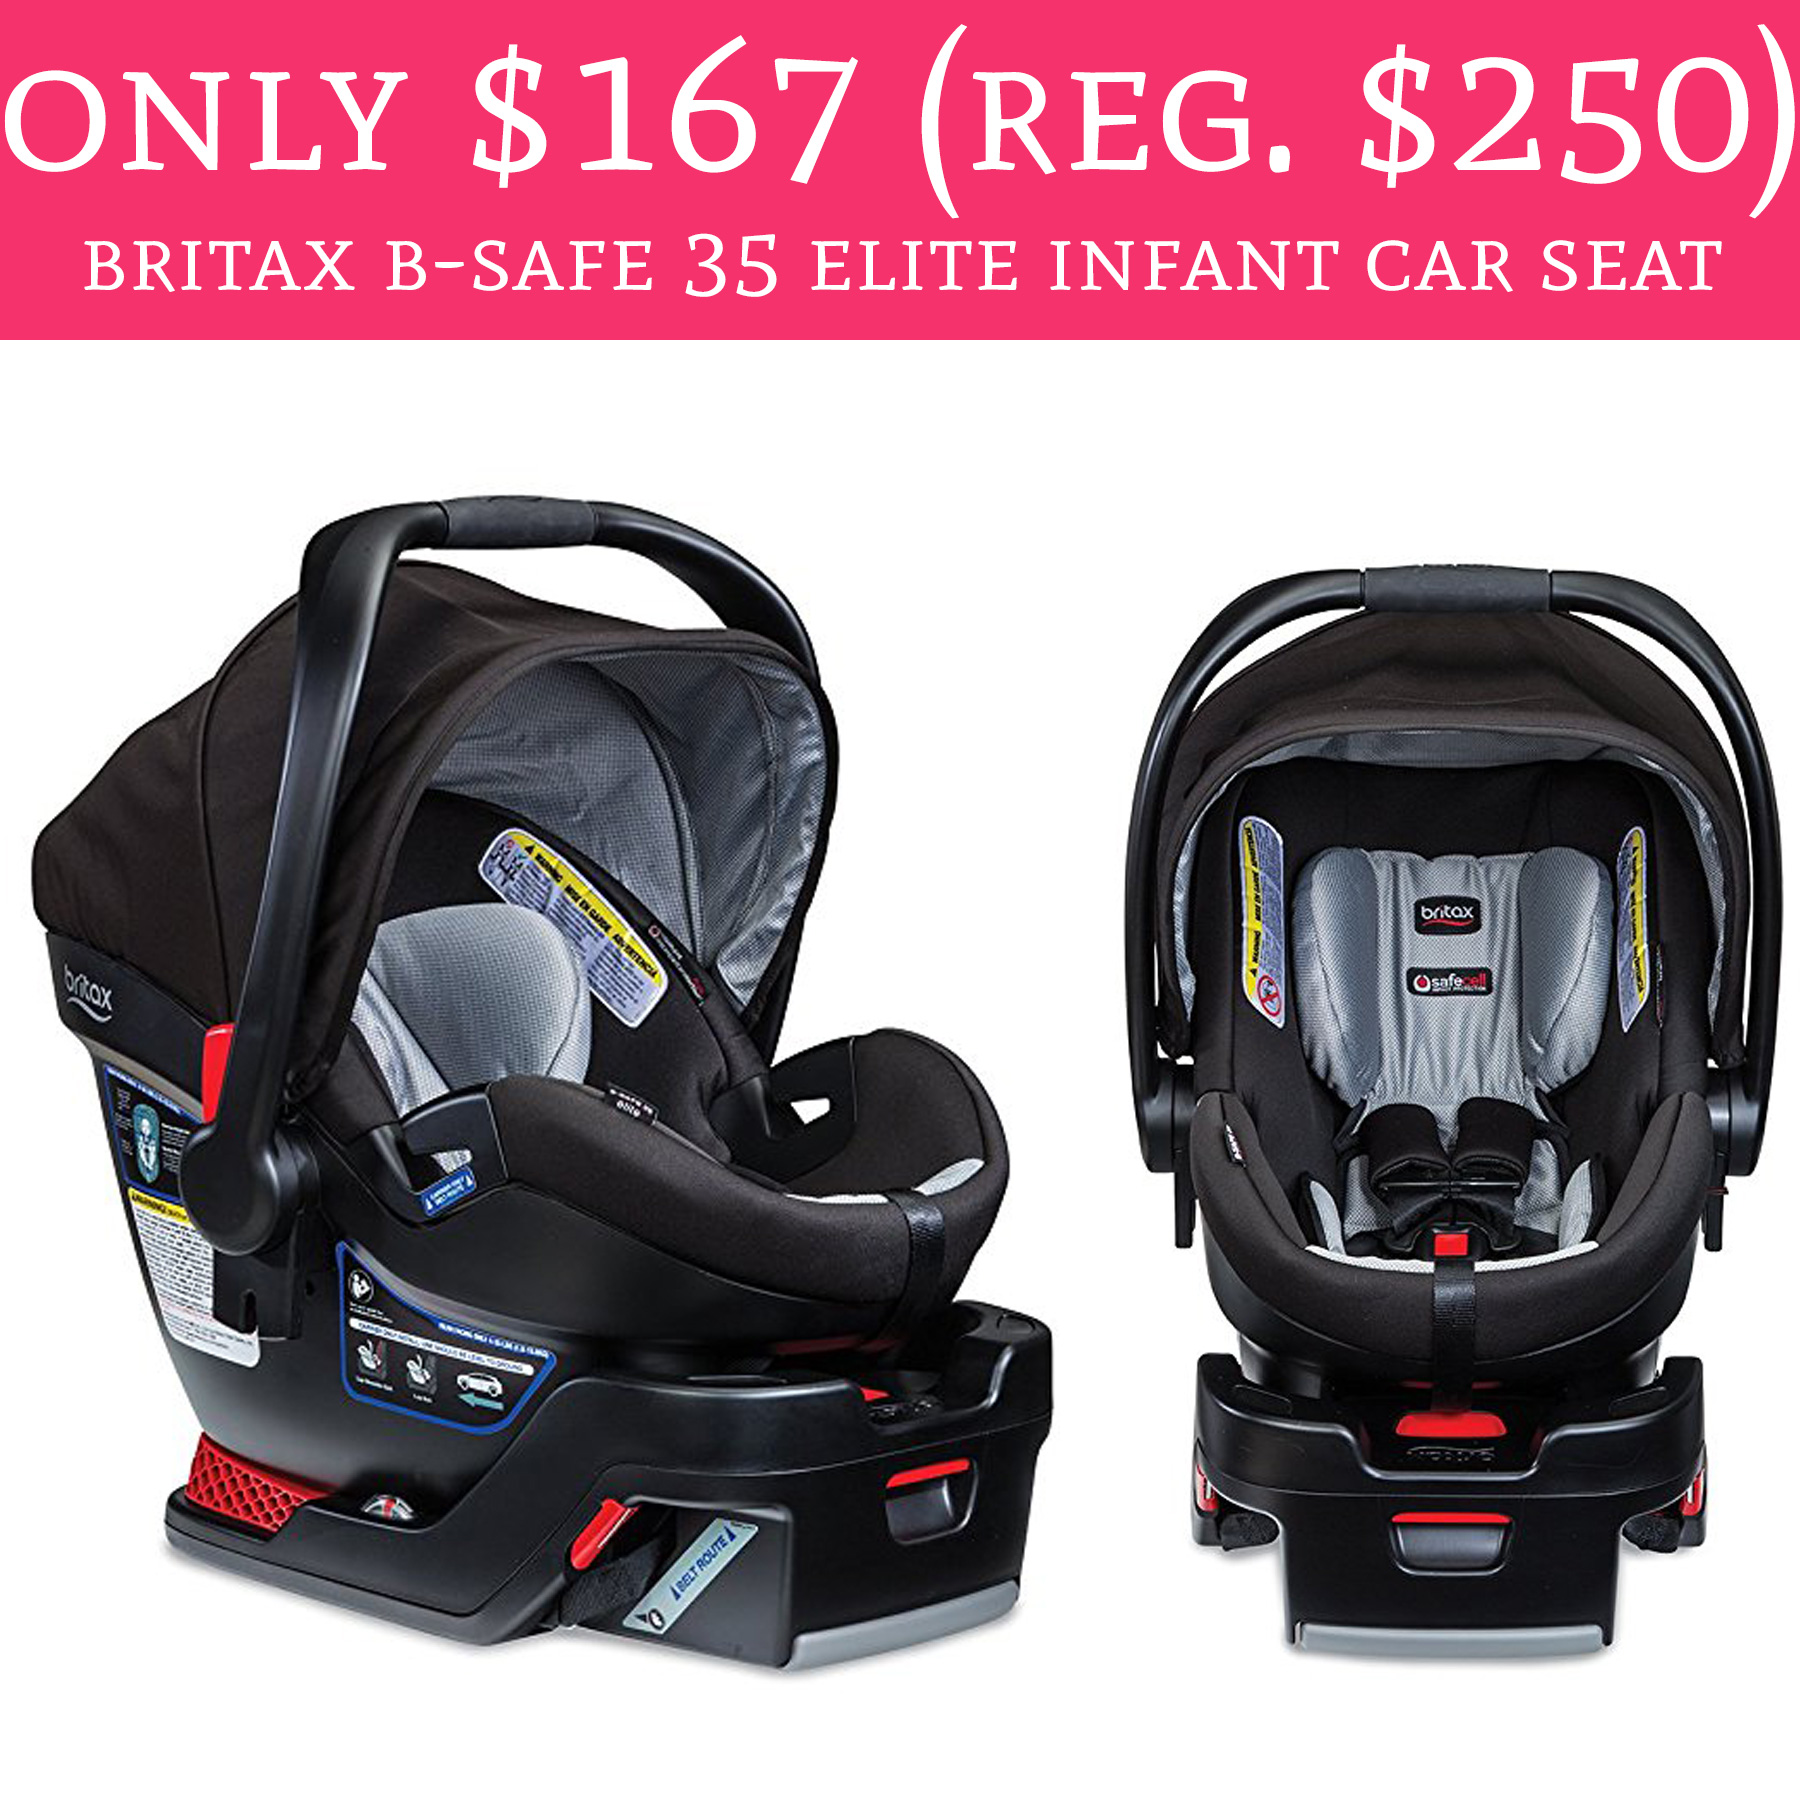 Infant Car Seat Deal Amazon